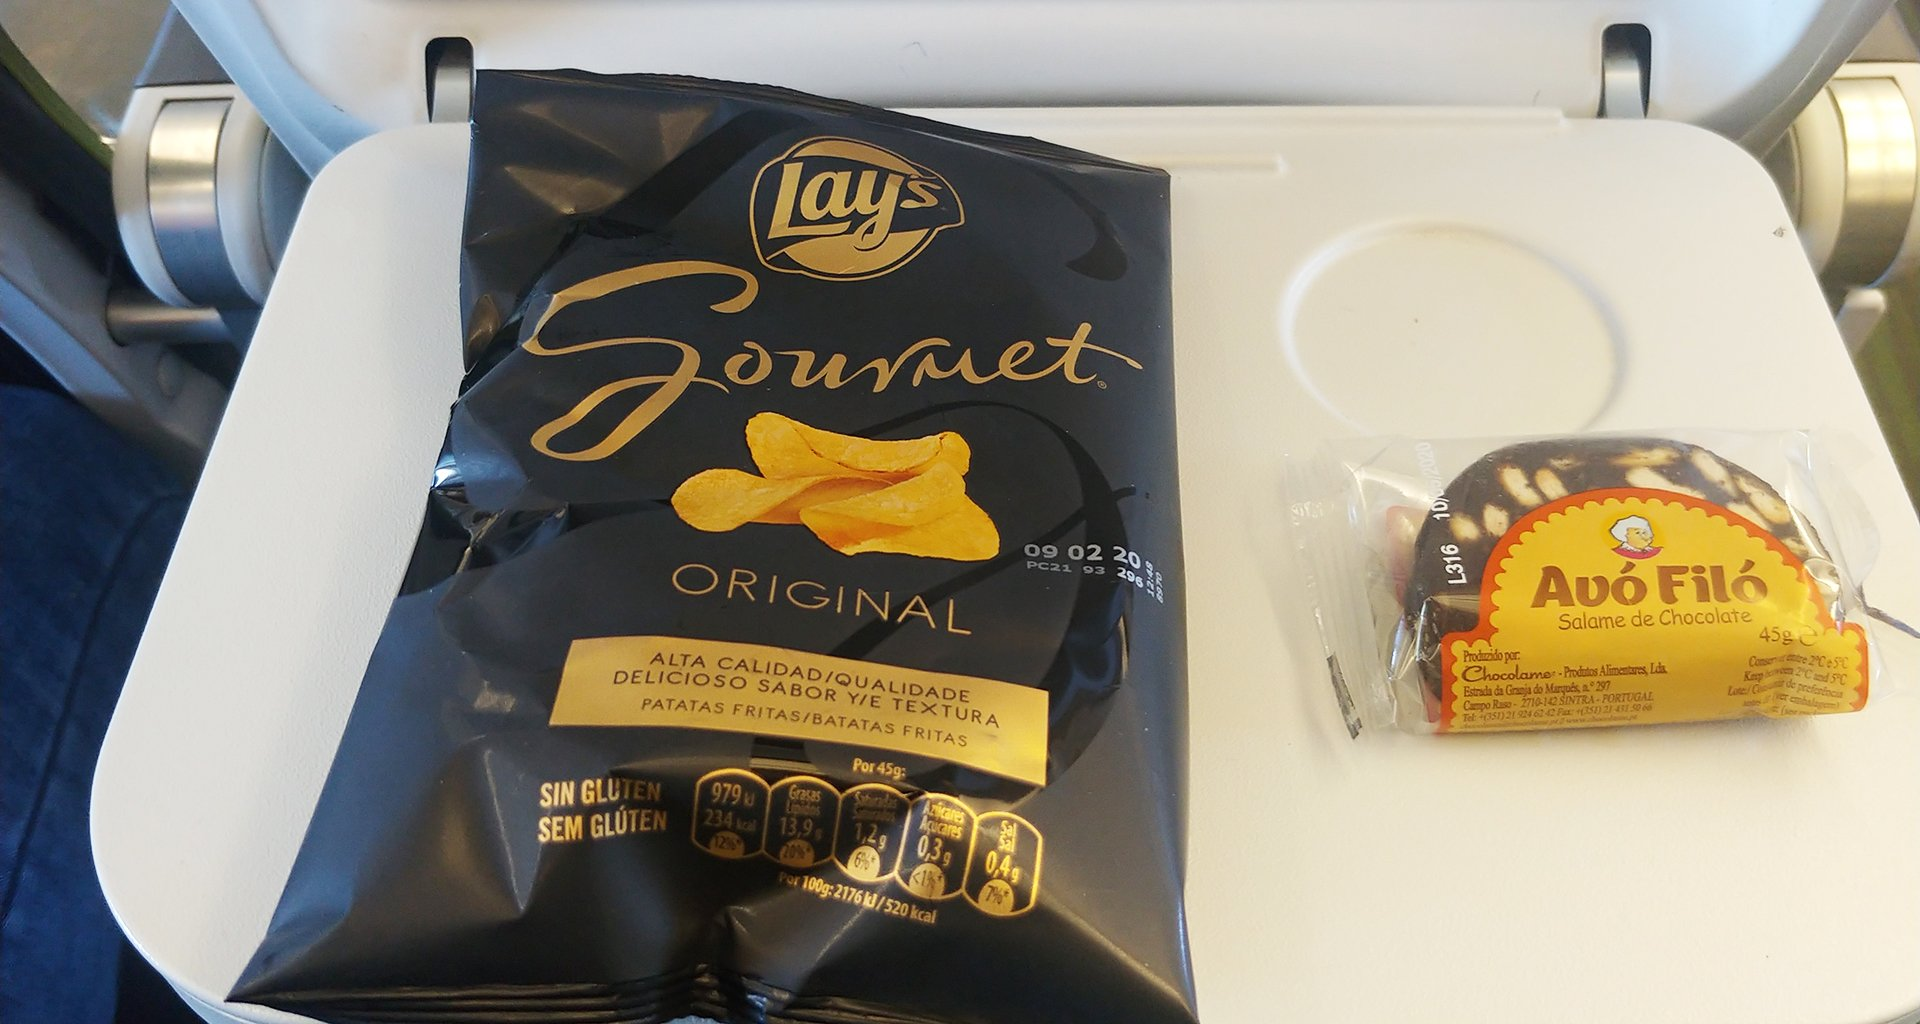 economy class snacks on TAP Portugal